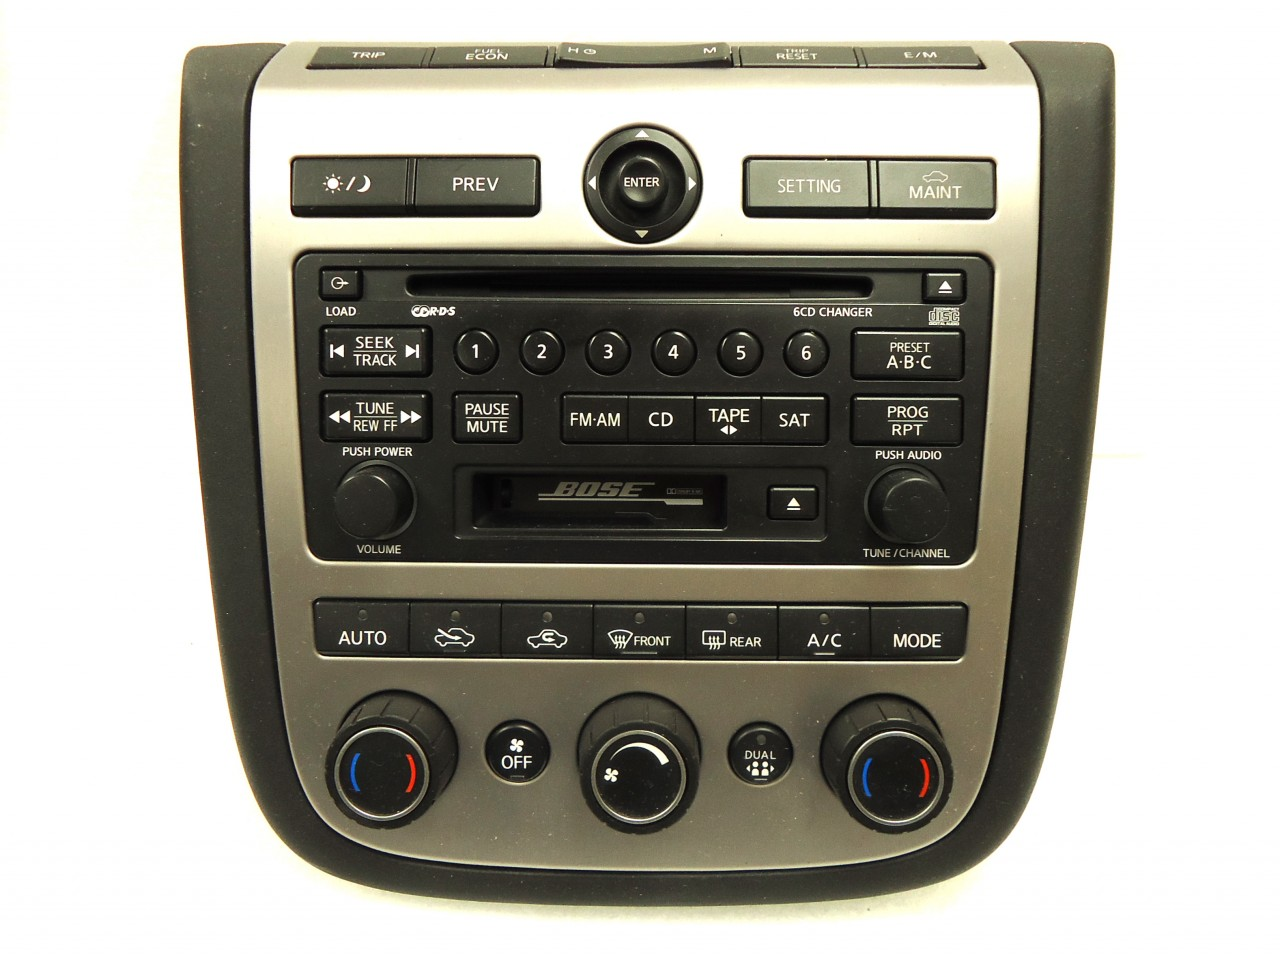 bose car stereo nissan murano. Black Bedroom Furniture Sets. Home Design Ideas